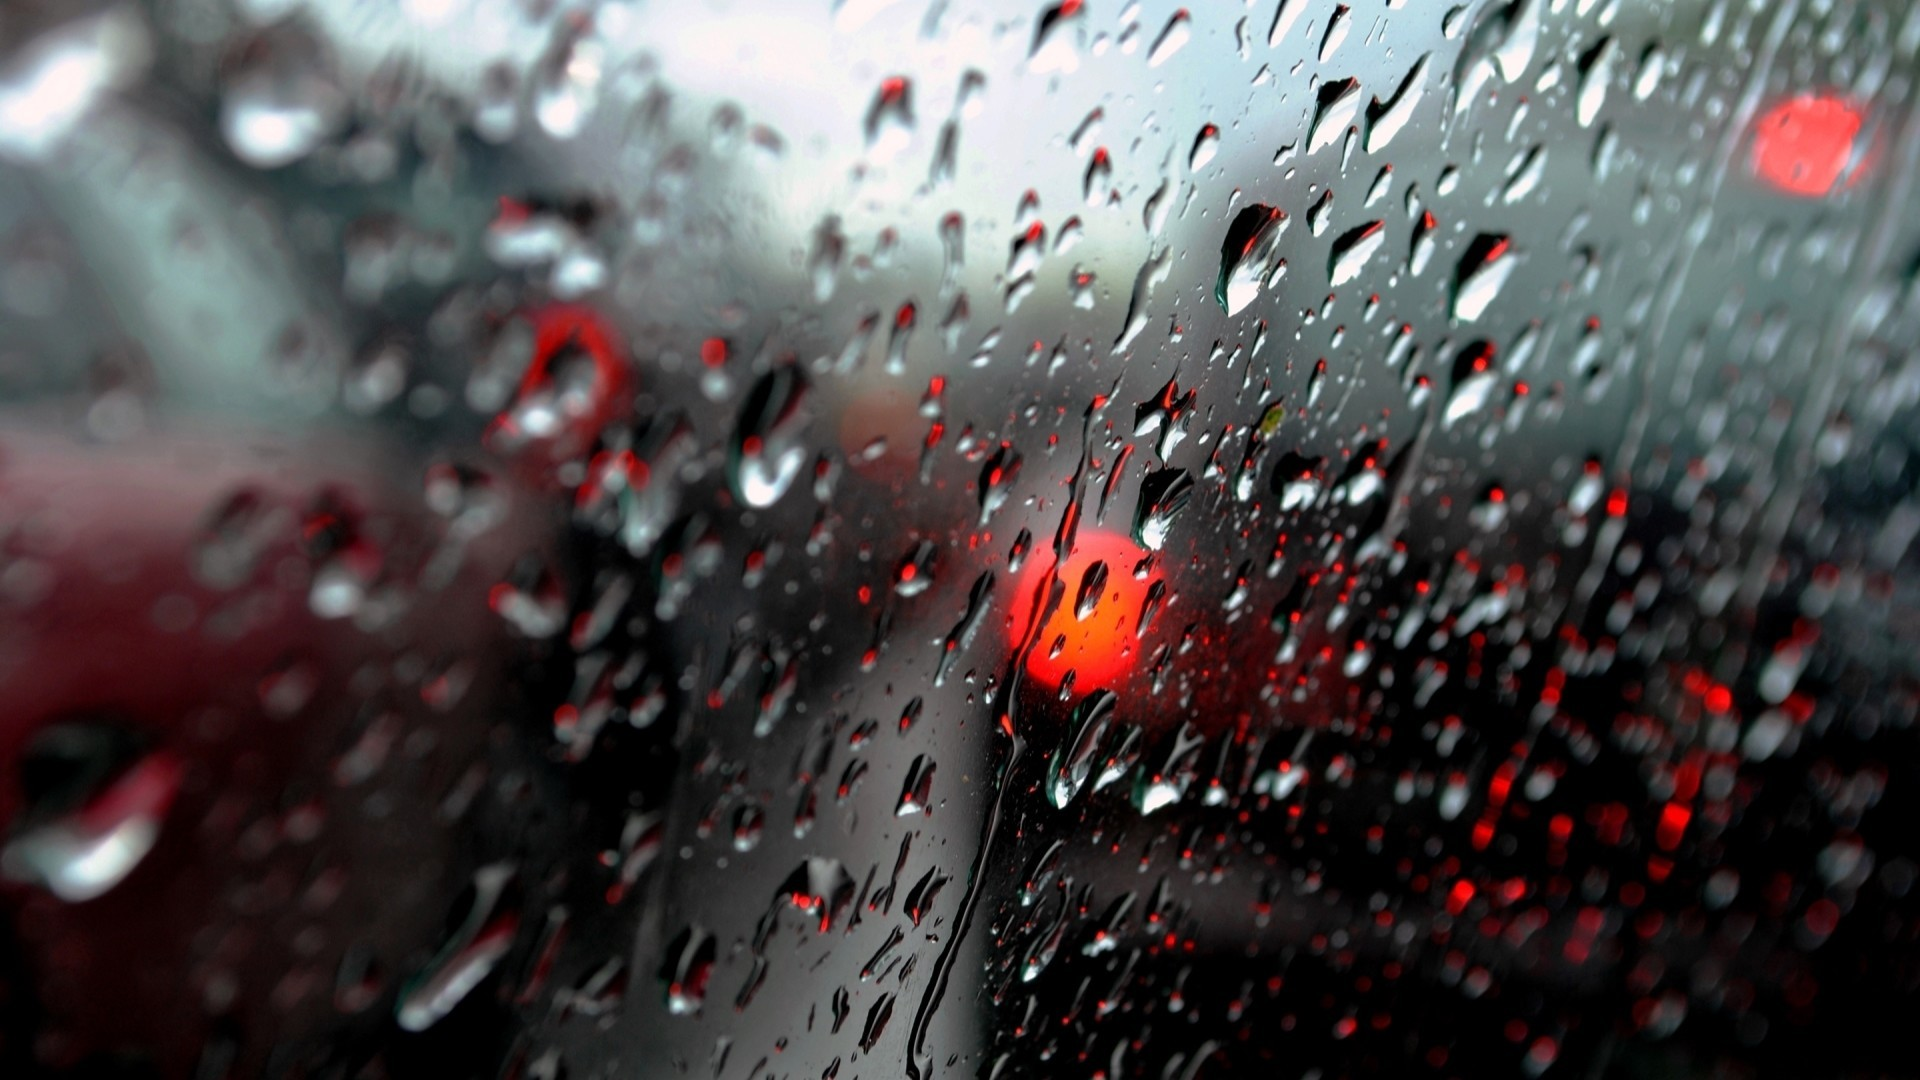 1920x1080  Window Drops Glass Rain Storm Wallpaper  340x220